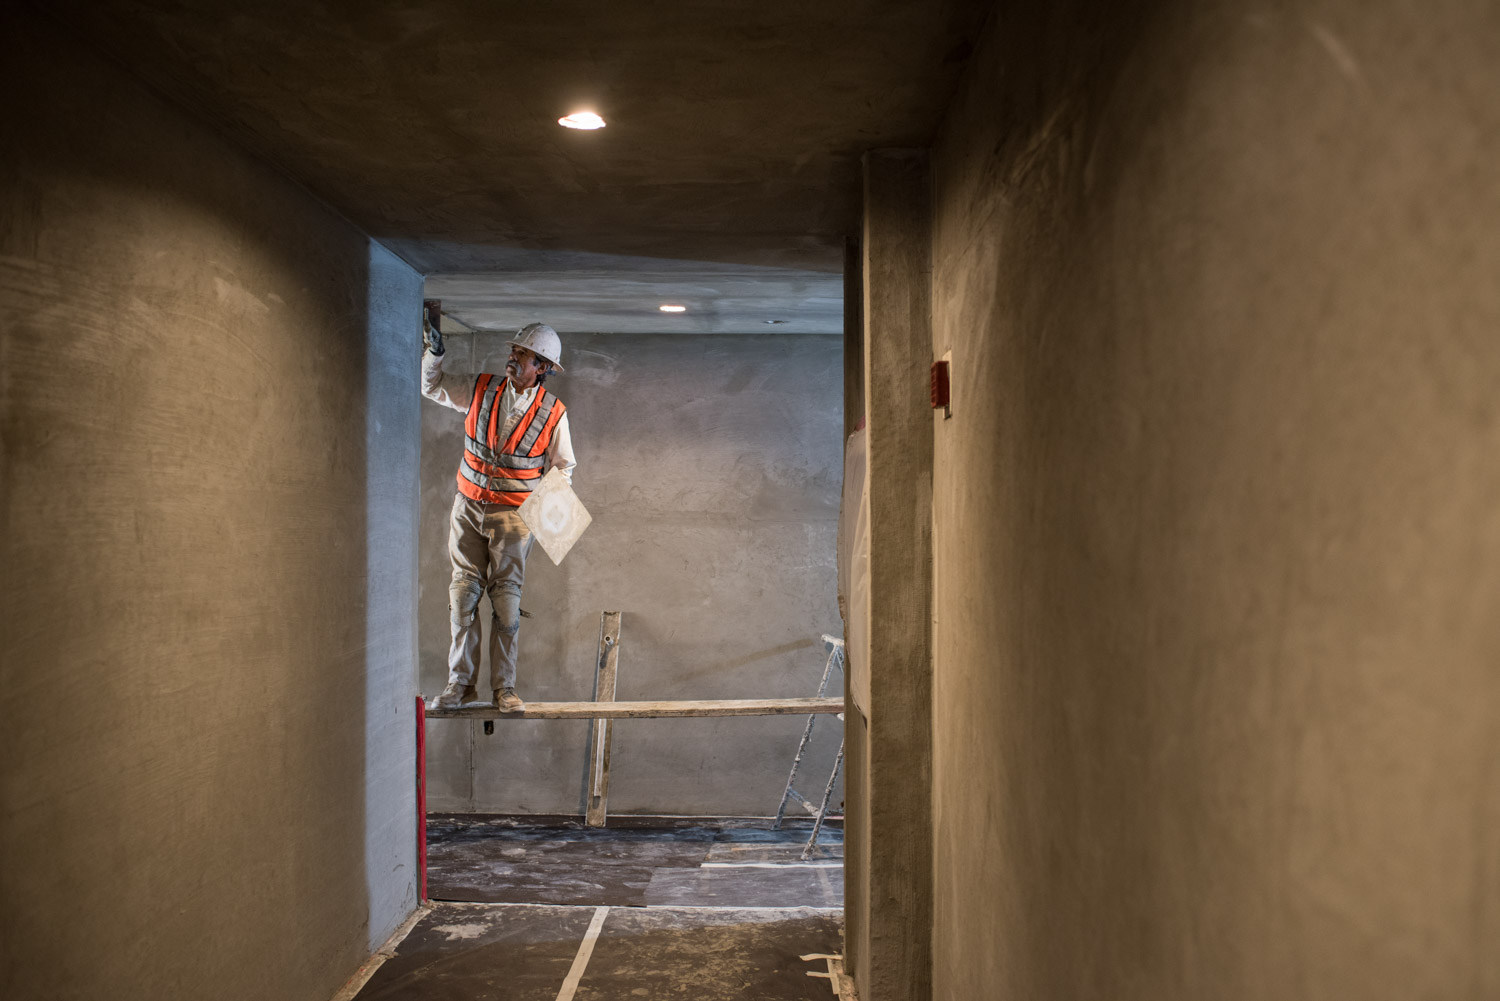 Nautilus General Contractor working on building interior, builder, construction photographer, contractor photography, lifestyle photography, lifestyle of architecture